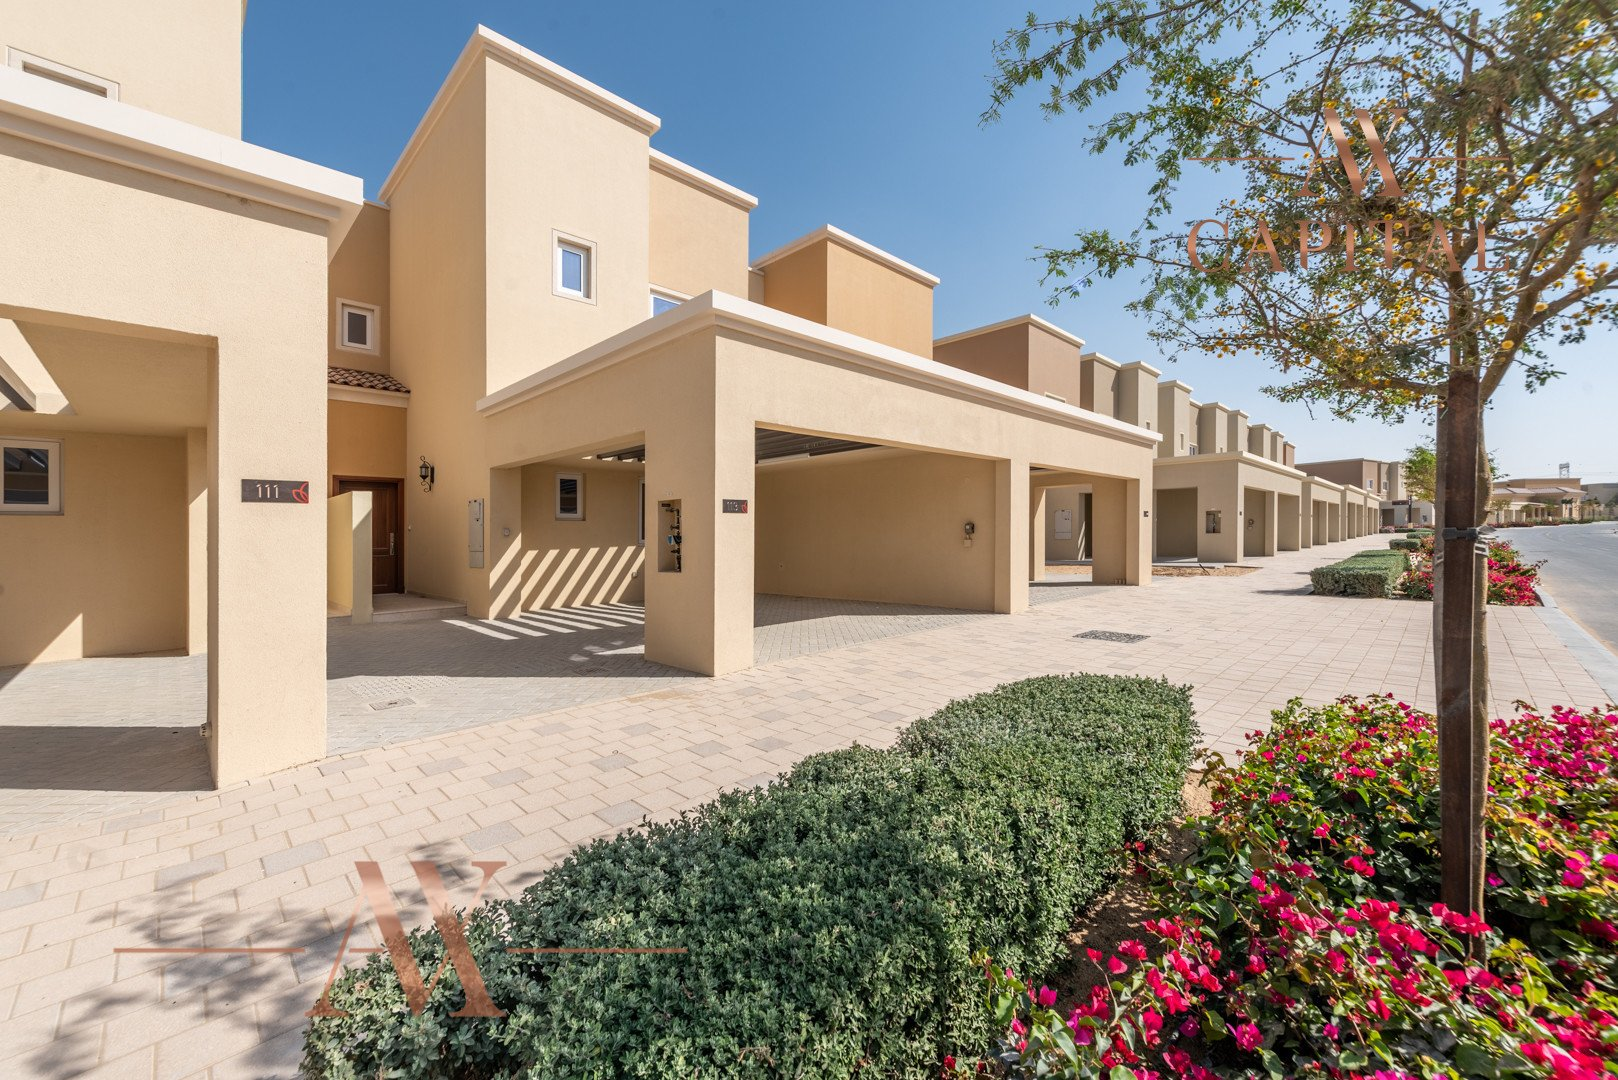 Townhouse for sale in Dubai, UAE, 3 bedrooms, 176 m2, No. 23719 – photo 13